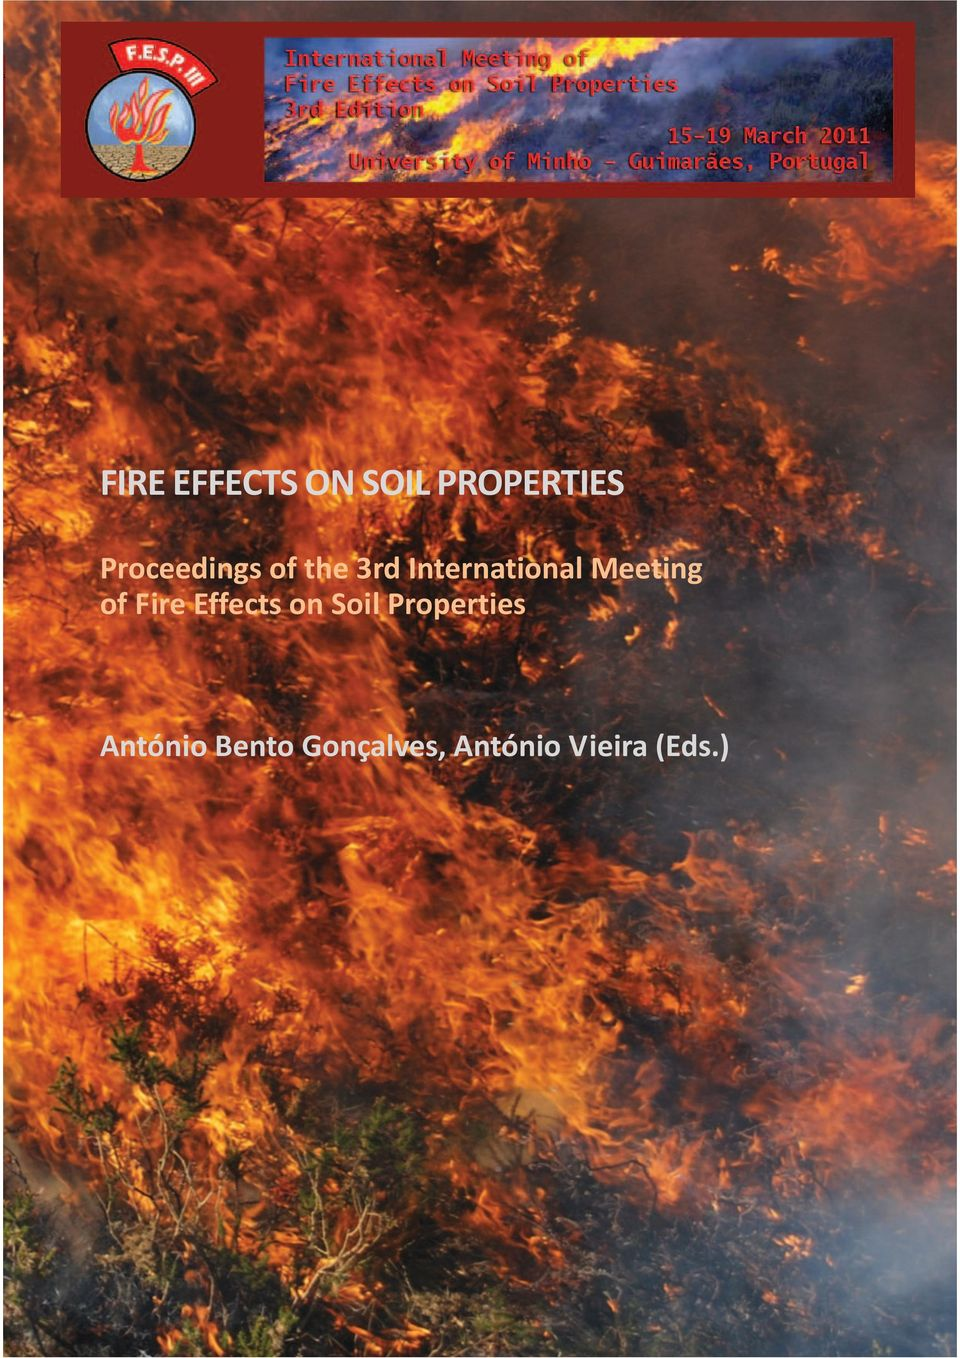 Meeting of Fire Effects on Soil